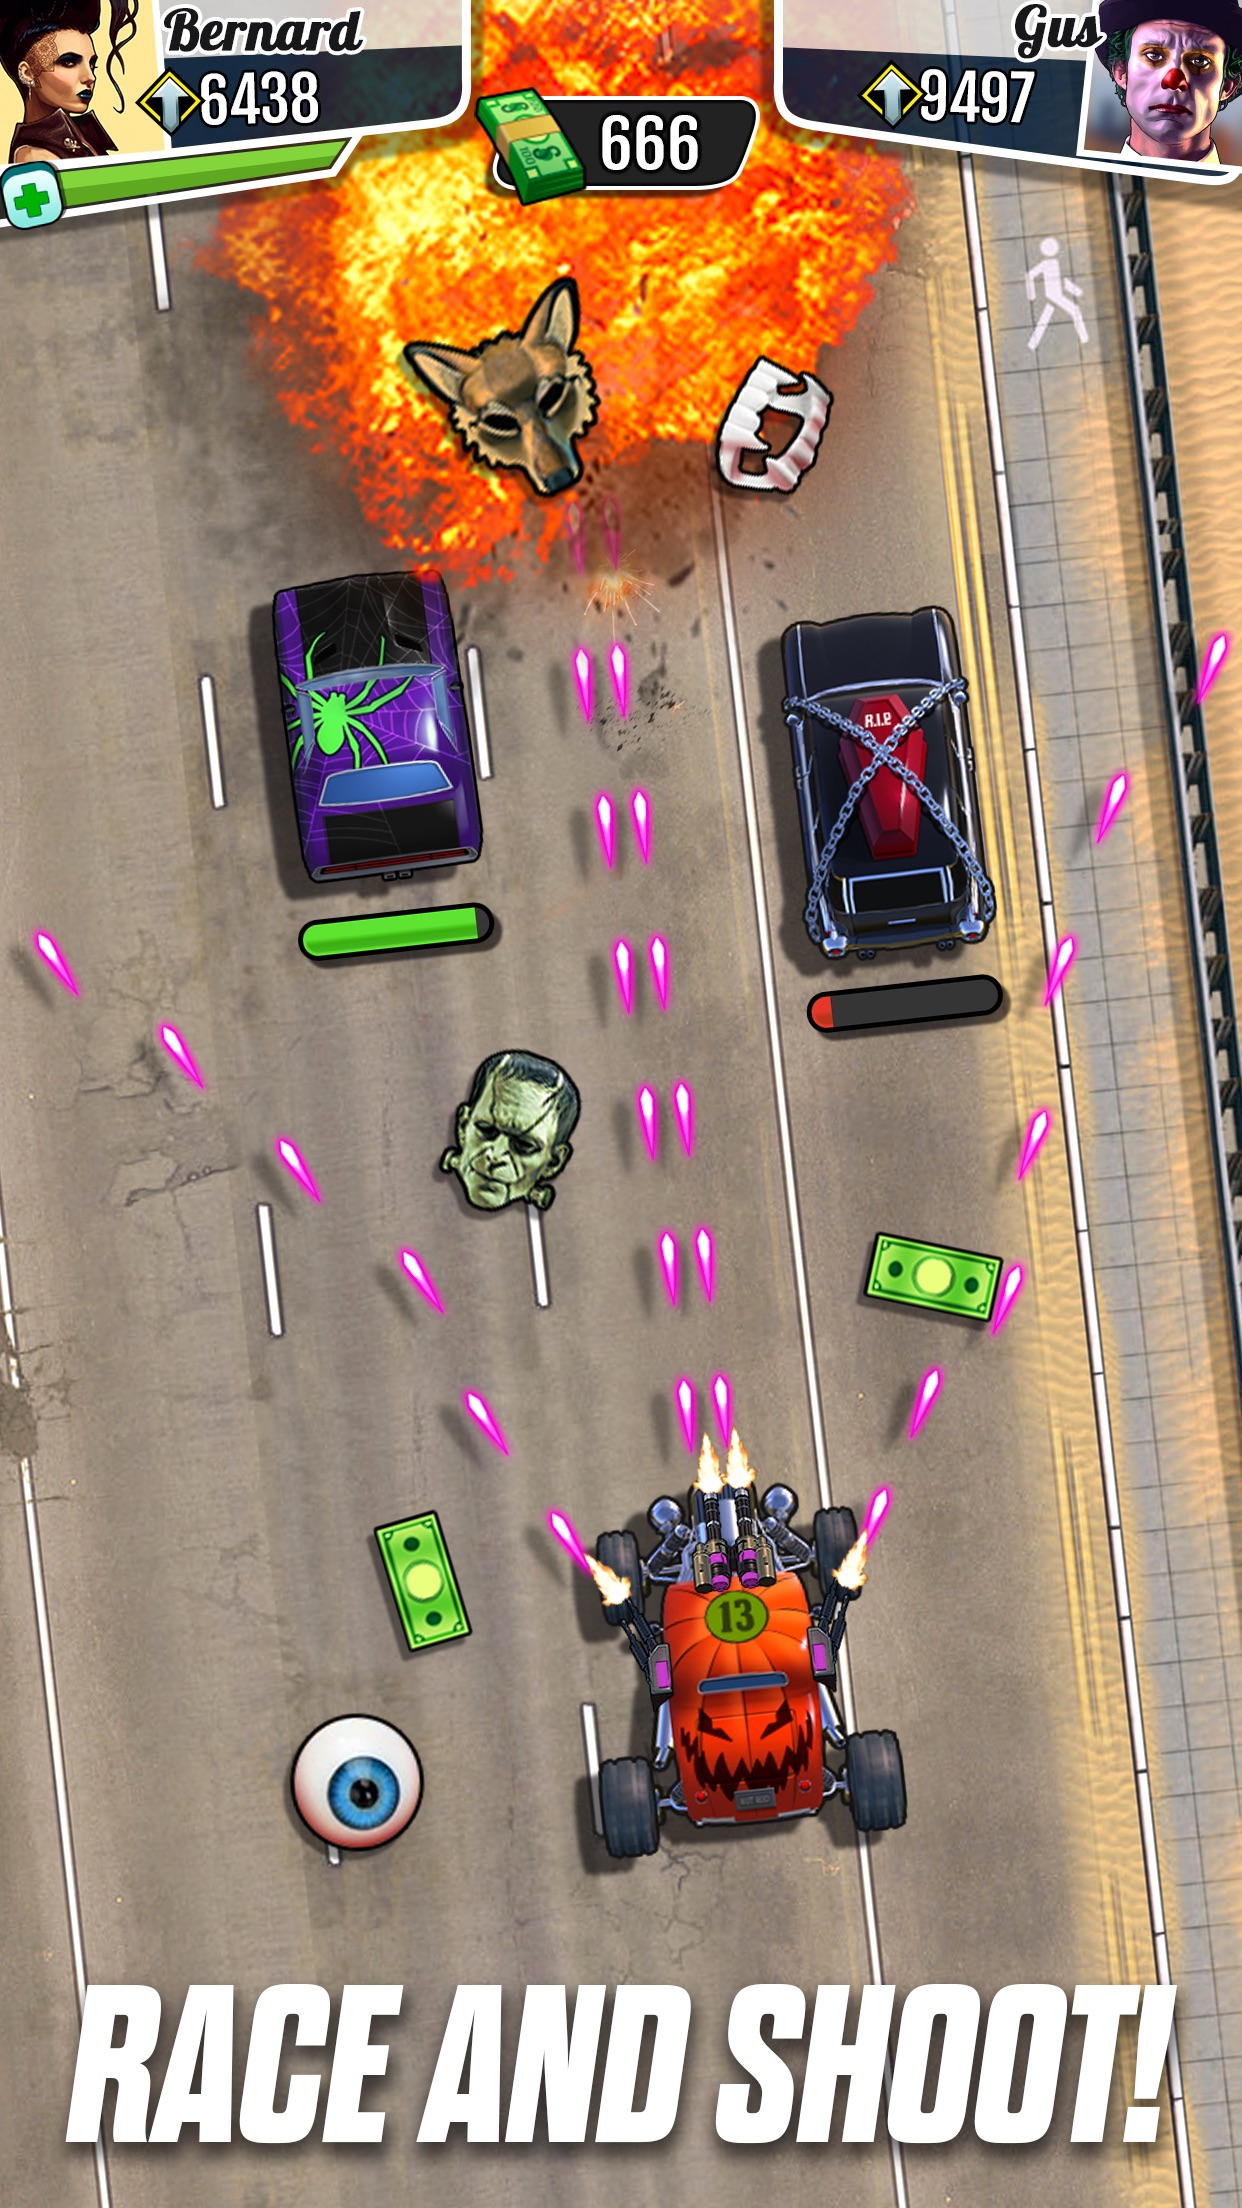 Fastlane: Car Racing Arcade #1 Screenshot